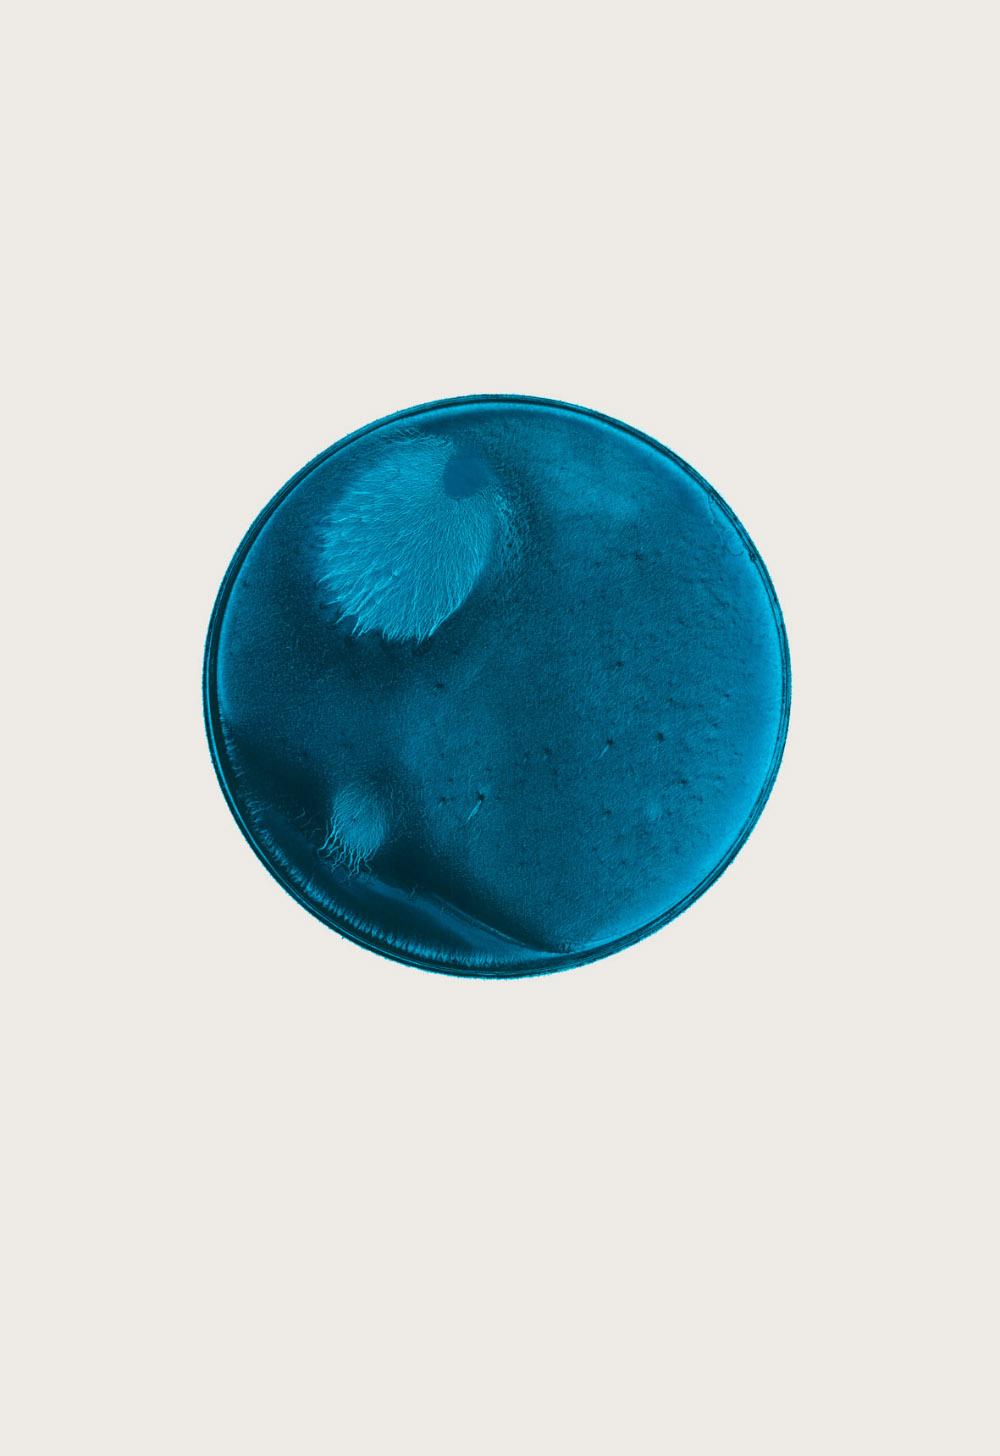 THIS IS NOW – turquoise (I)  2010  pigment dispersal on 100% cotton fibre   101.0 x 73.7 cm, Ø 36.6 cm